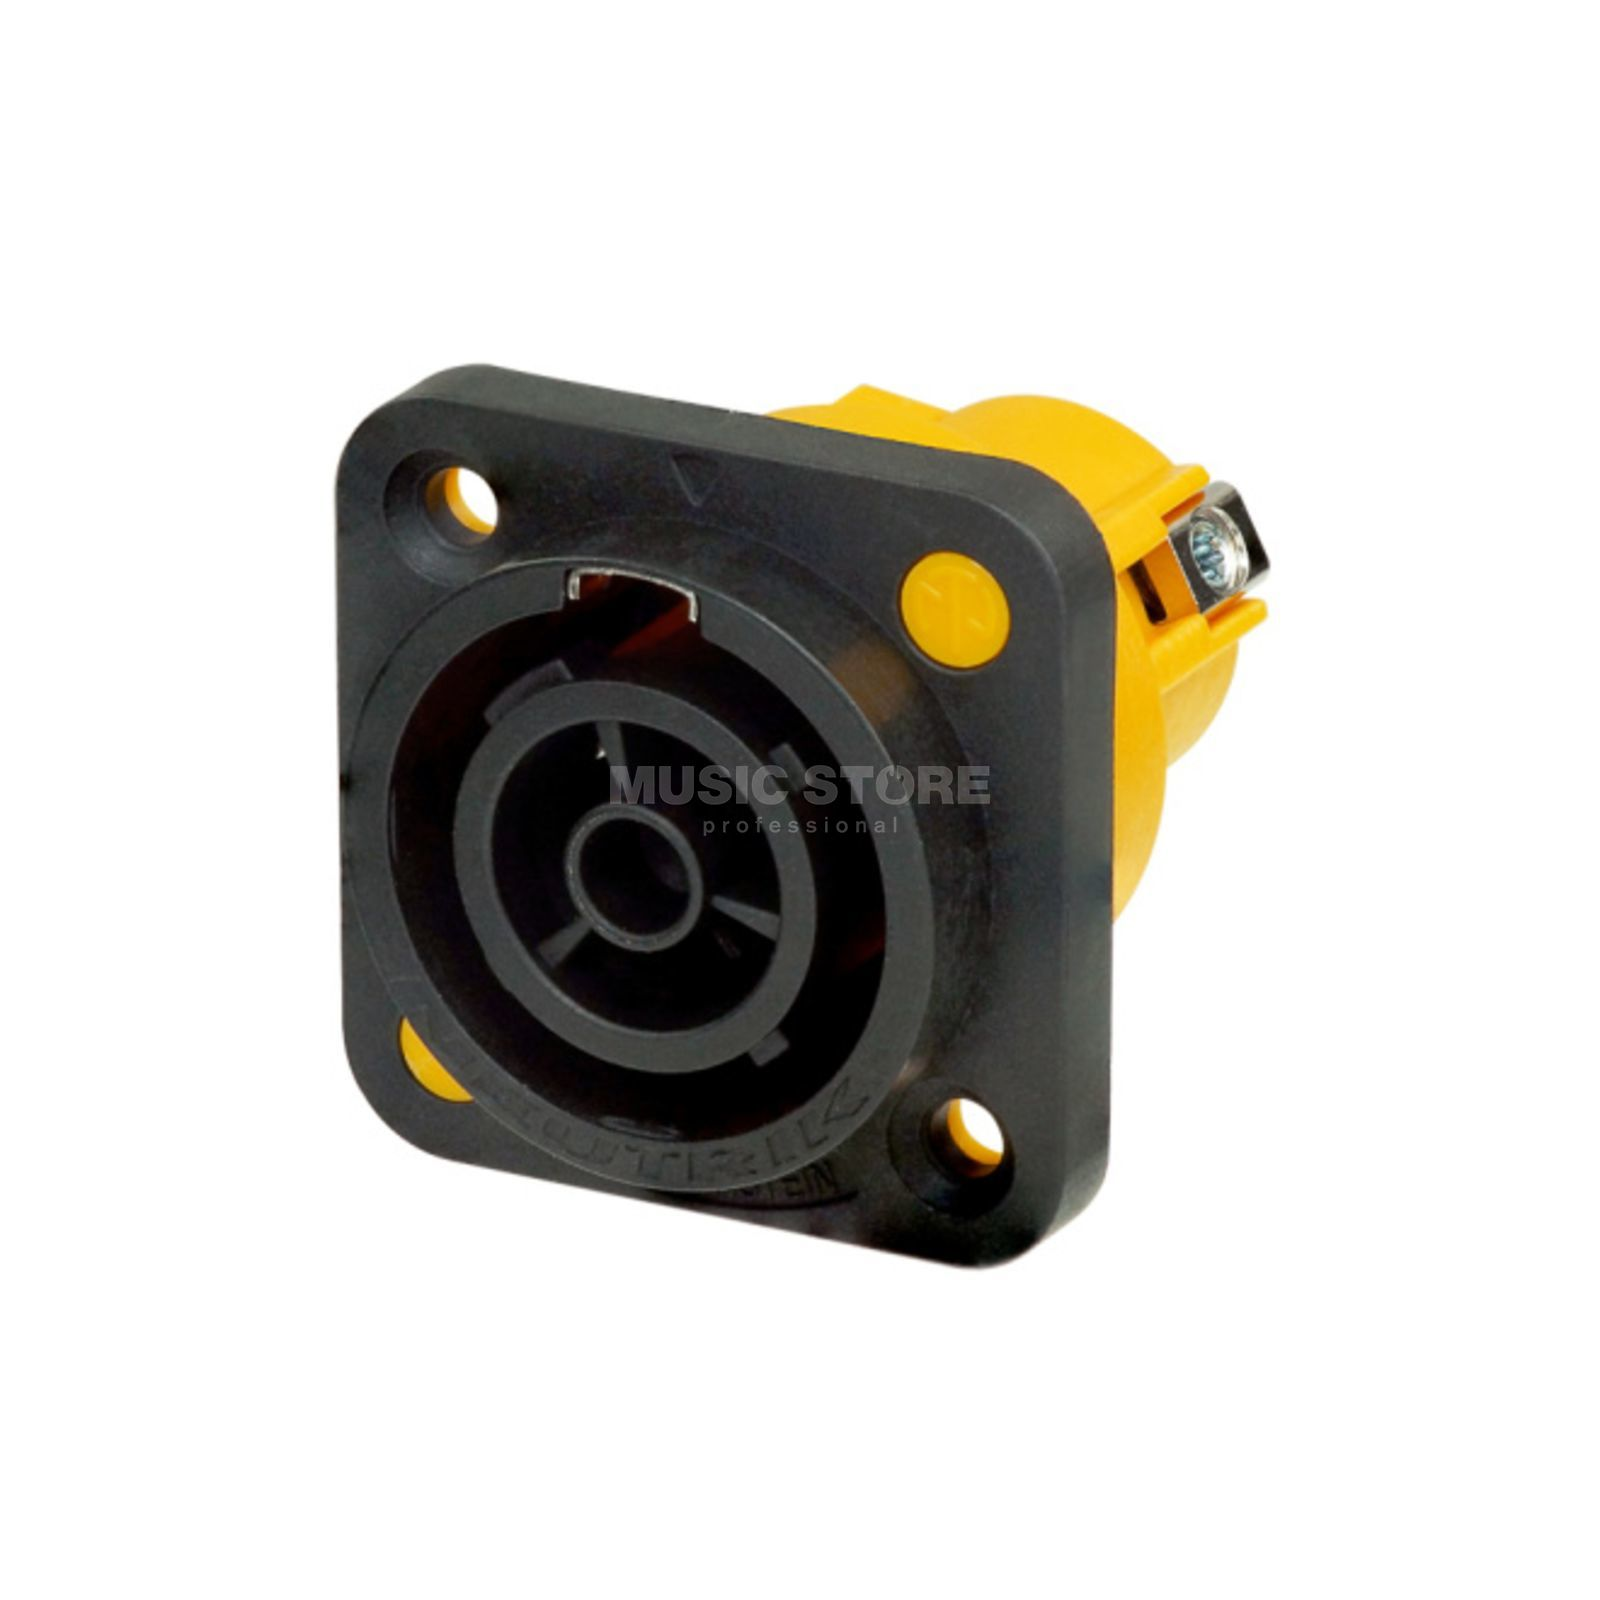 Neutrik NAC3FPX-ST Appliance outlet connector, powerCON TRUE1 Product Image